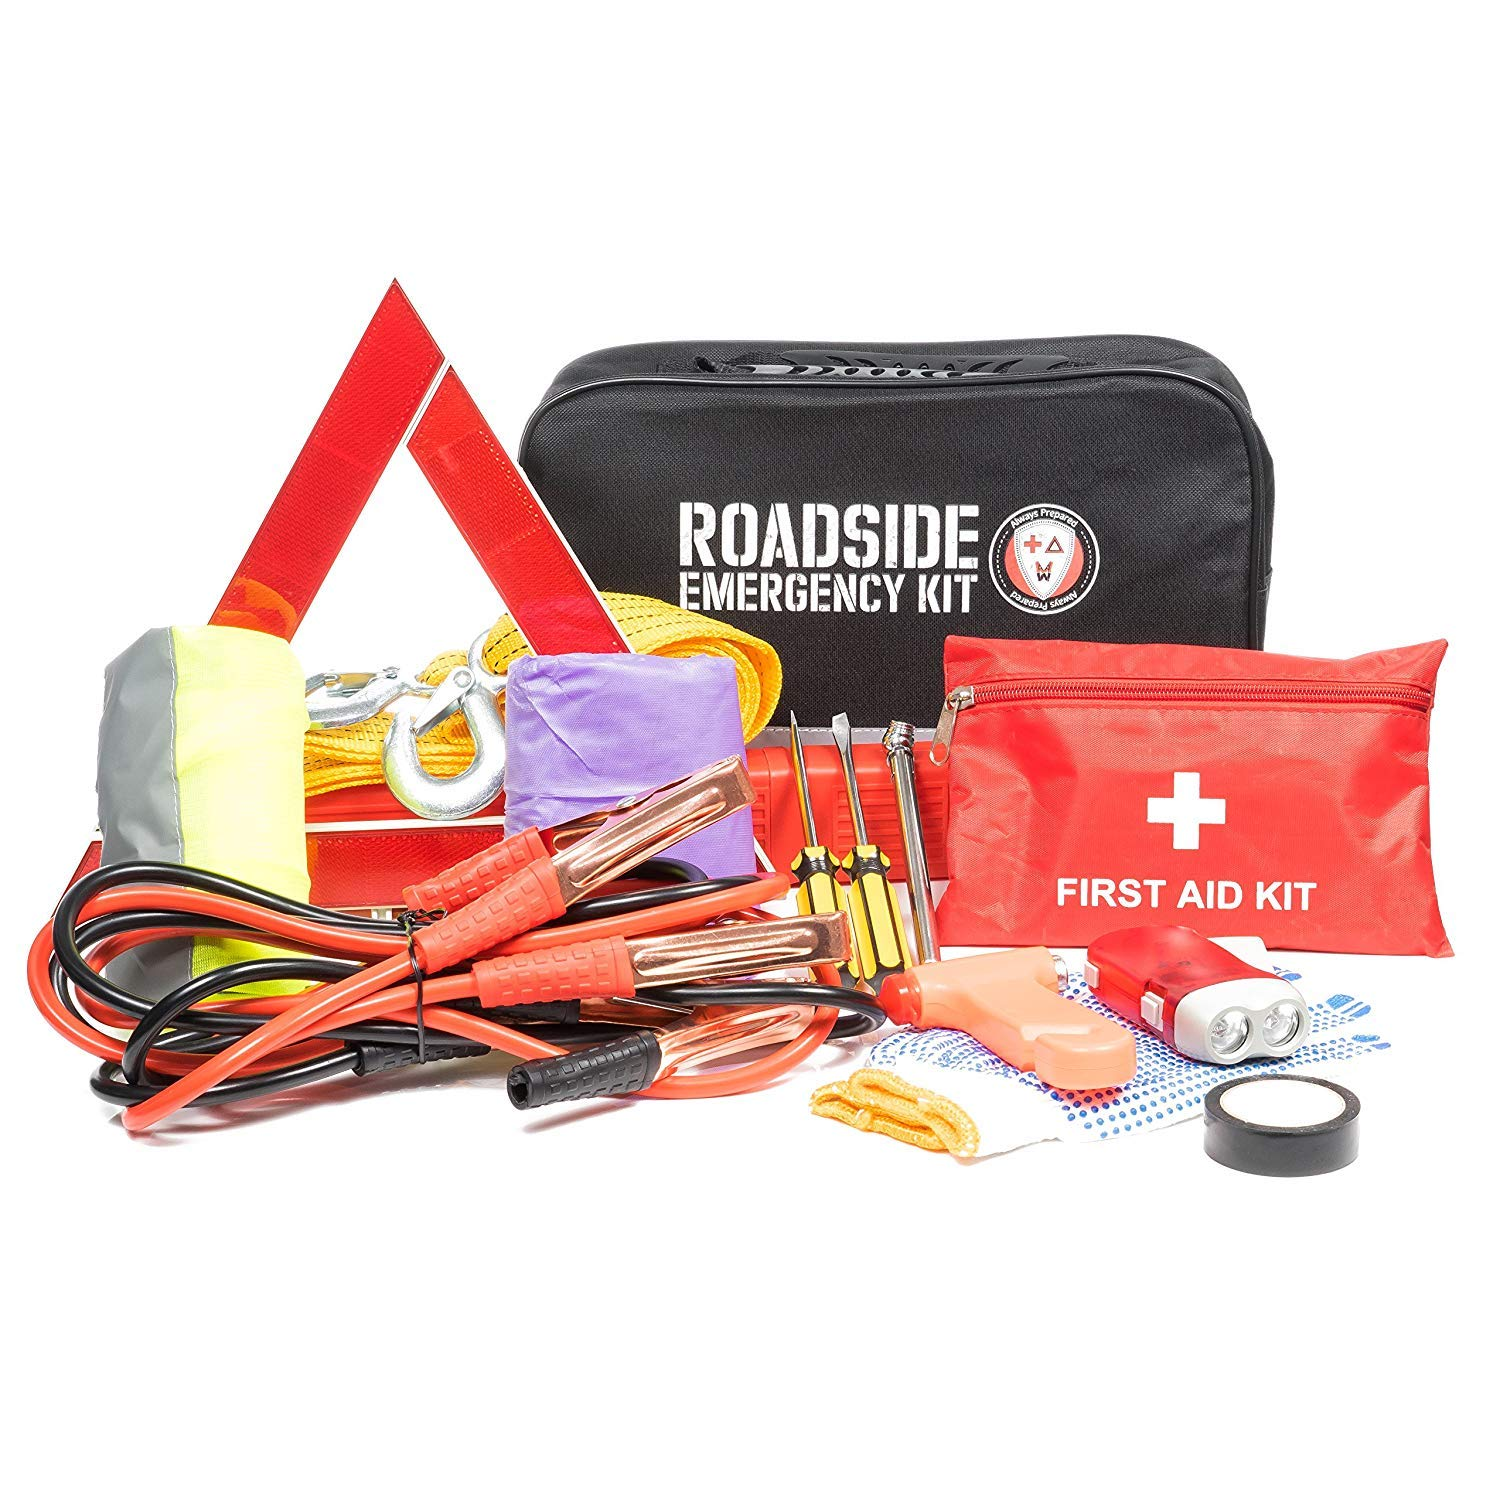 Roadside Assistance Car Emergency Kit - First Aid Kit, Jumper Cables, Tow Rope, LED Flash Light, Rain Coat, Tire Pressure Gauge, Safety Vest & More Ideal Winter Accessory For Your Car, Truck Or SUV WNG Brands